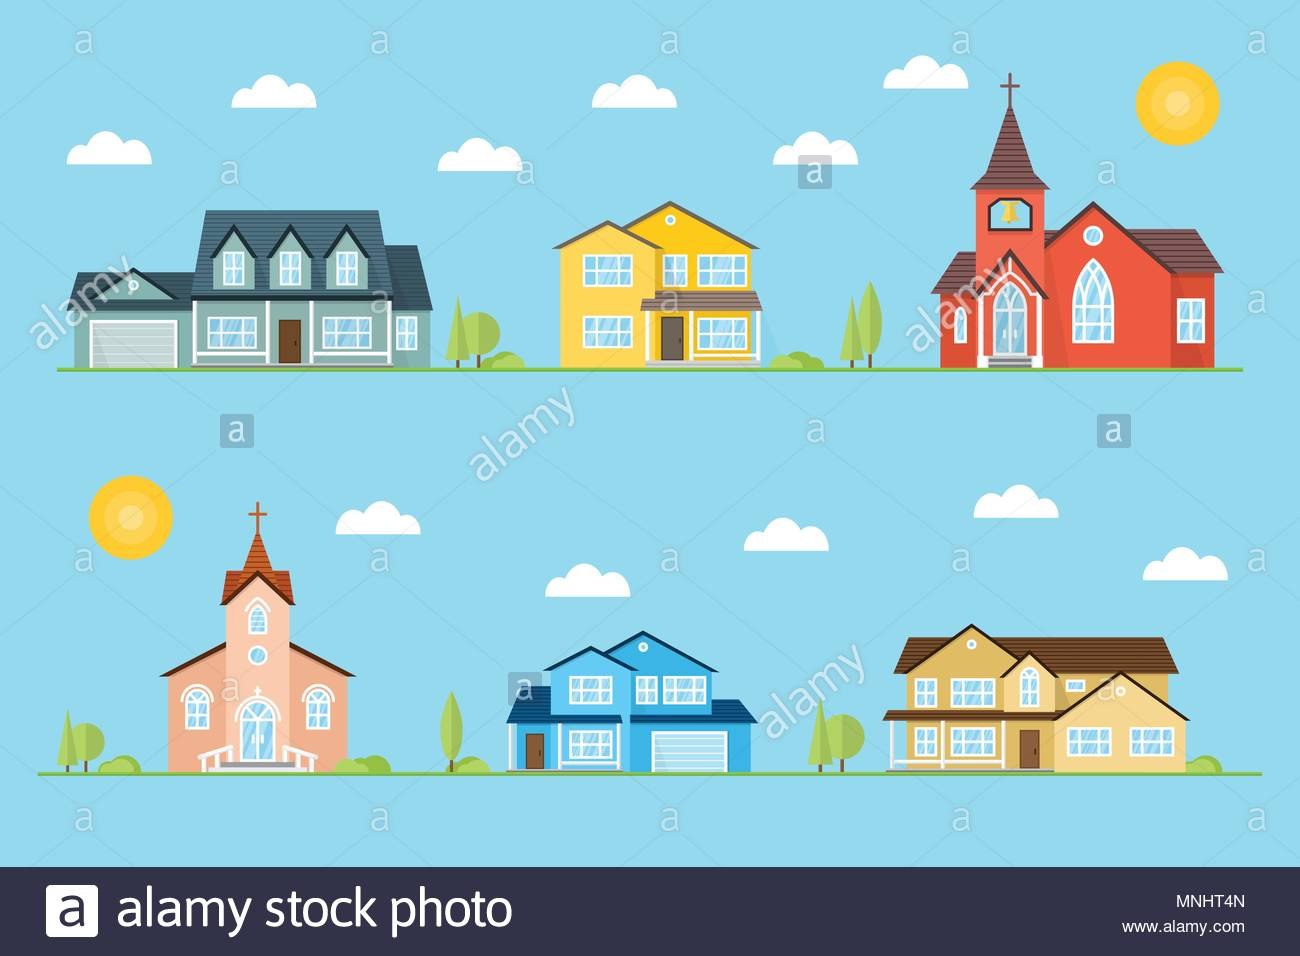 Neighborhood with homes and churches illustrated on the blue 1300x956